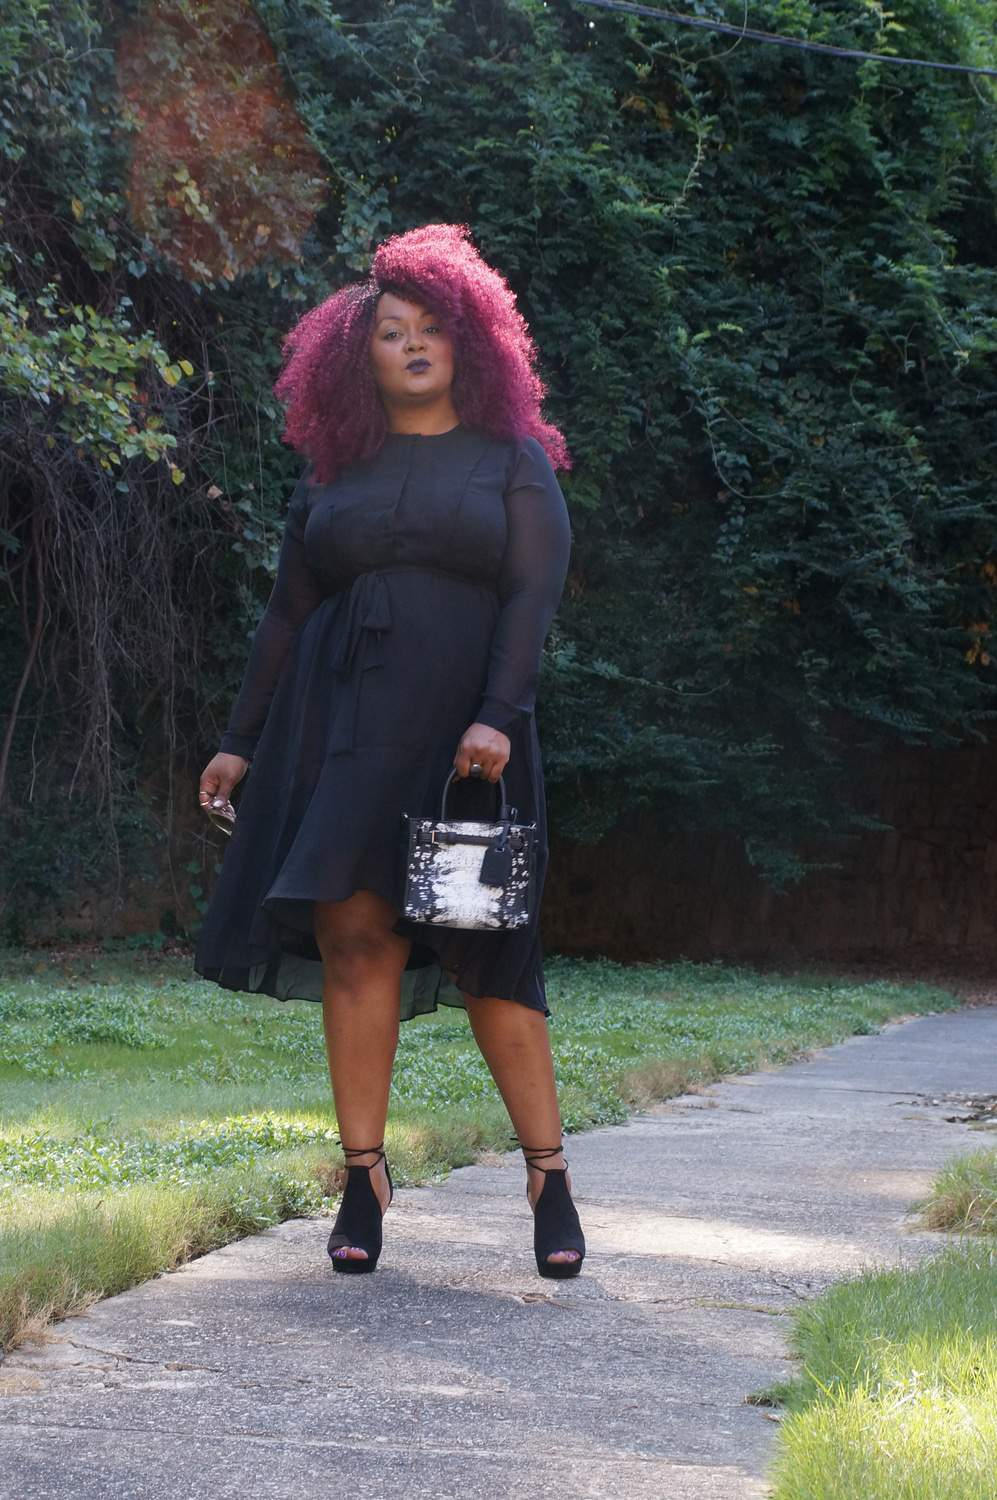 Marie Denee The Curvy Fashionista in Simply Vera Vera Wang from Kohls